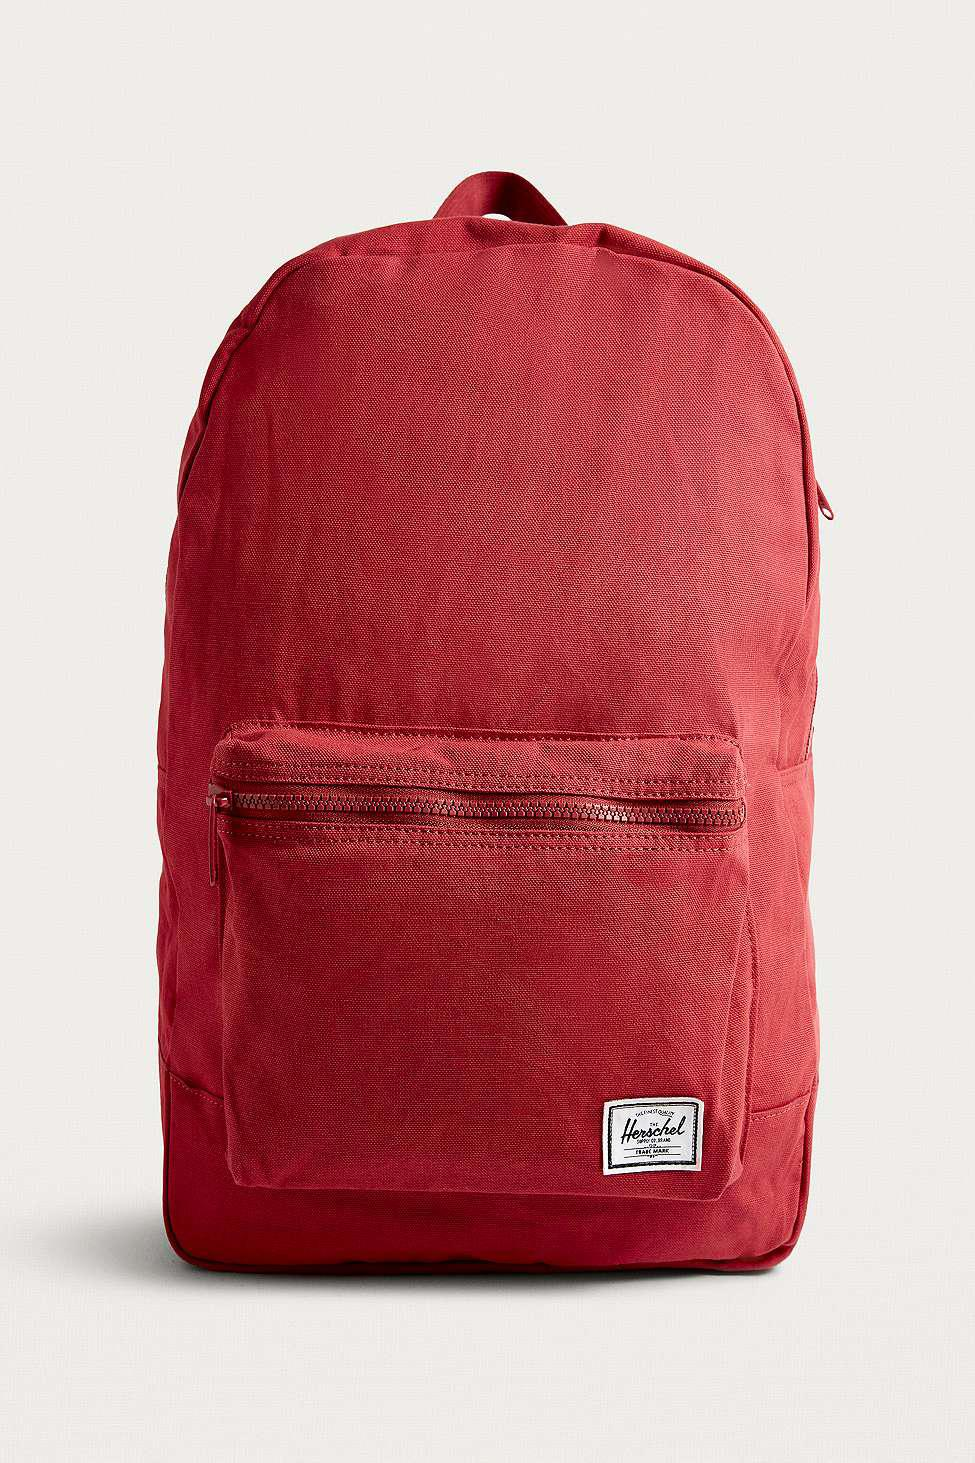 Herschel Supply Co. Brick Cotton Casuals Daypack Backpack - Mens All ... 3264114d1d5e3